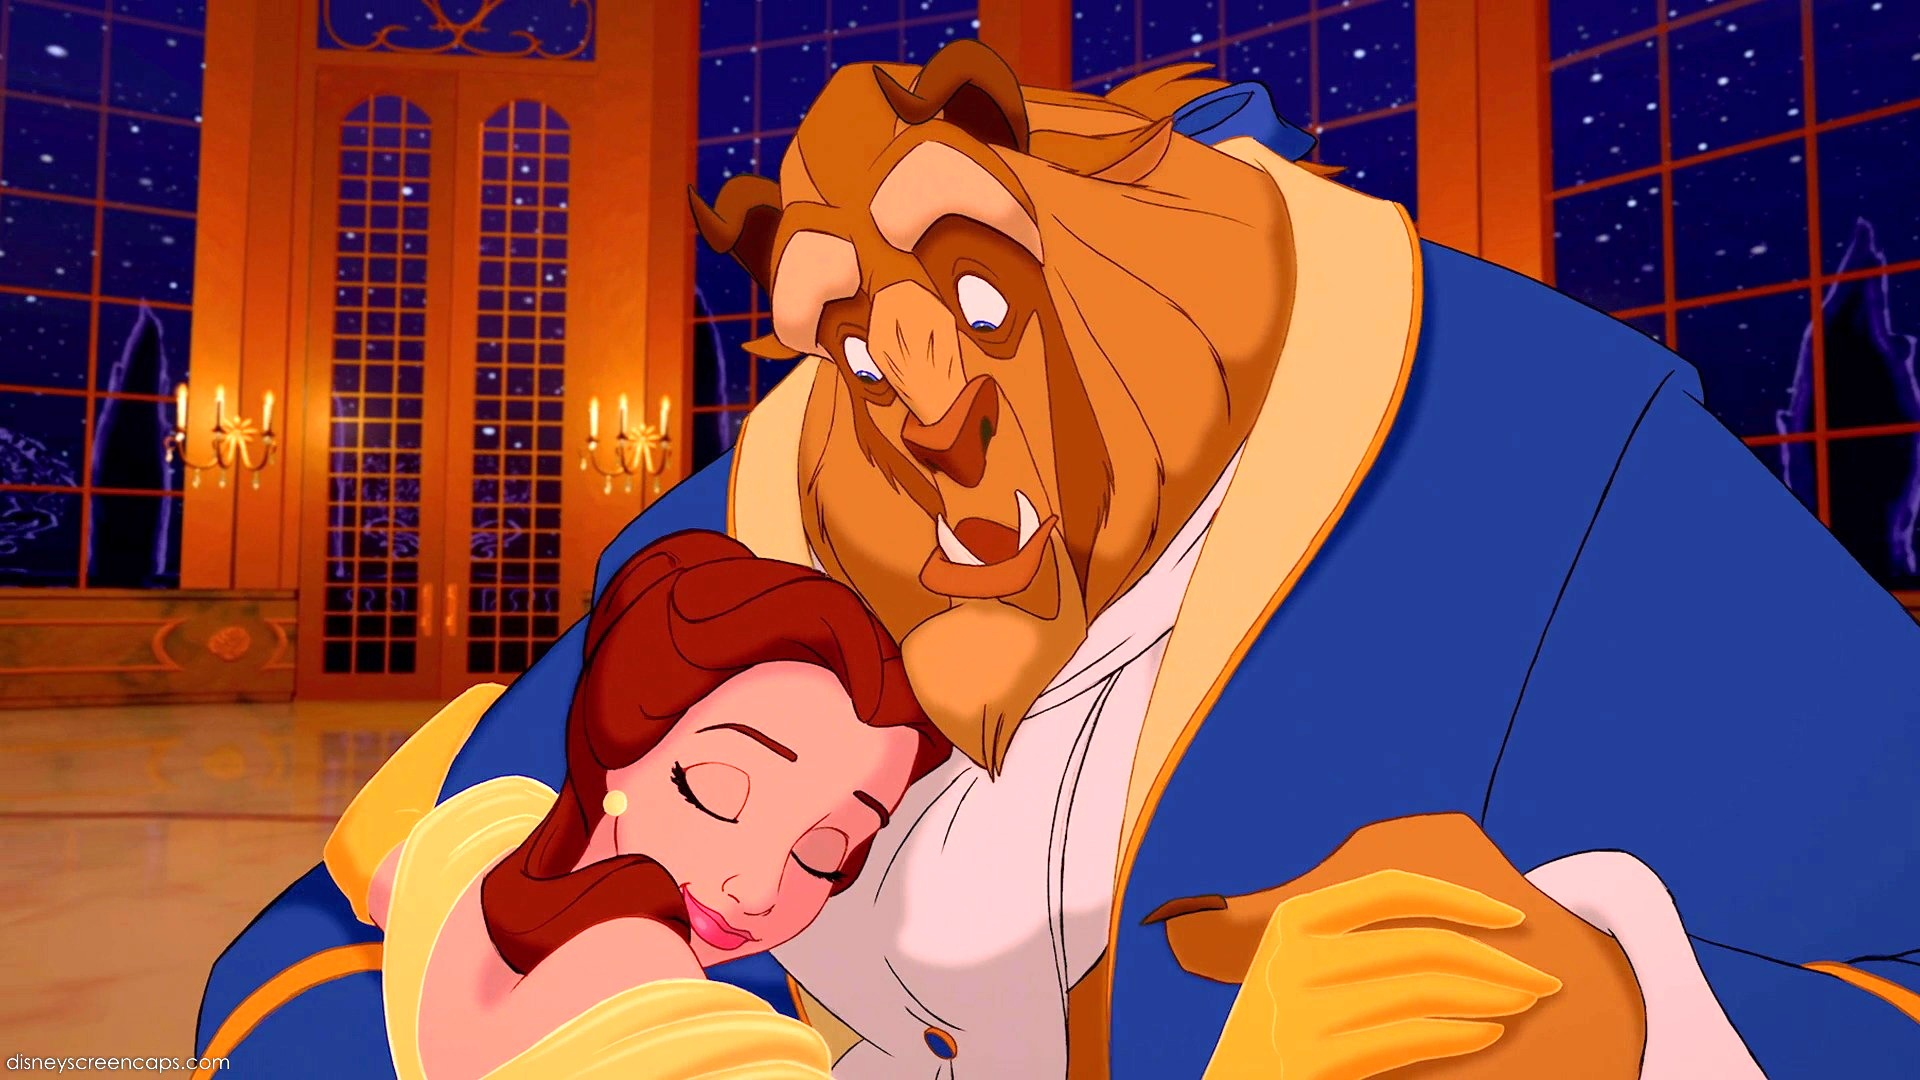 https://i2.wp.com/images6.fanpop.com/image/photos/32400000/if-you-give-trust-you-will-get-trust-beauty-and-the-beast-32448279-1920-1080.jpg